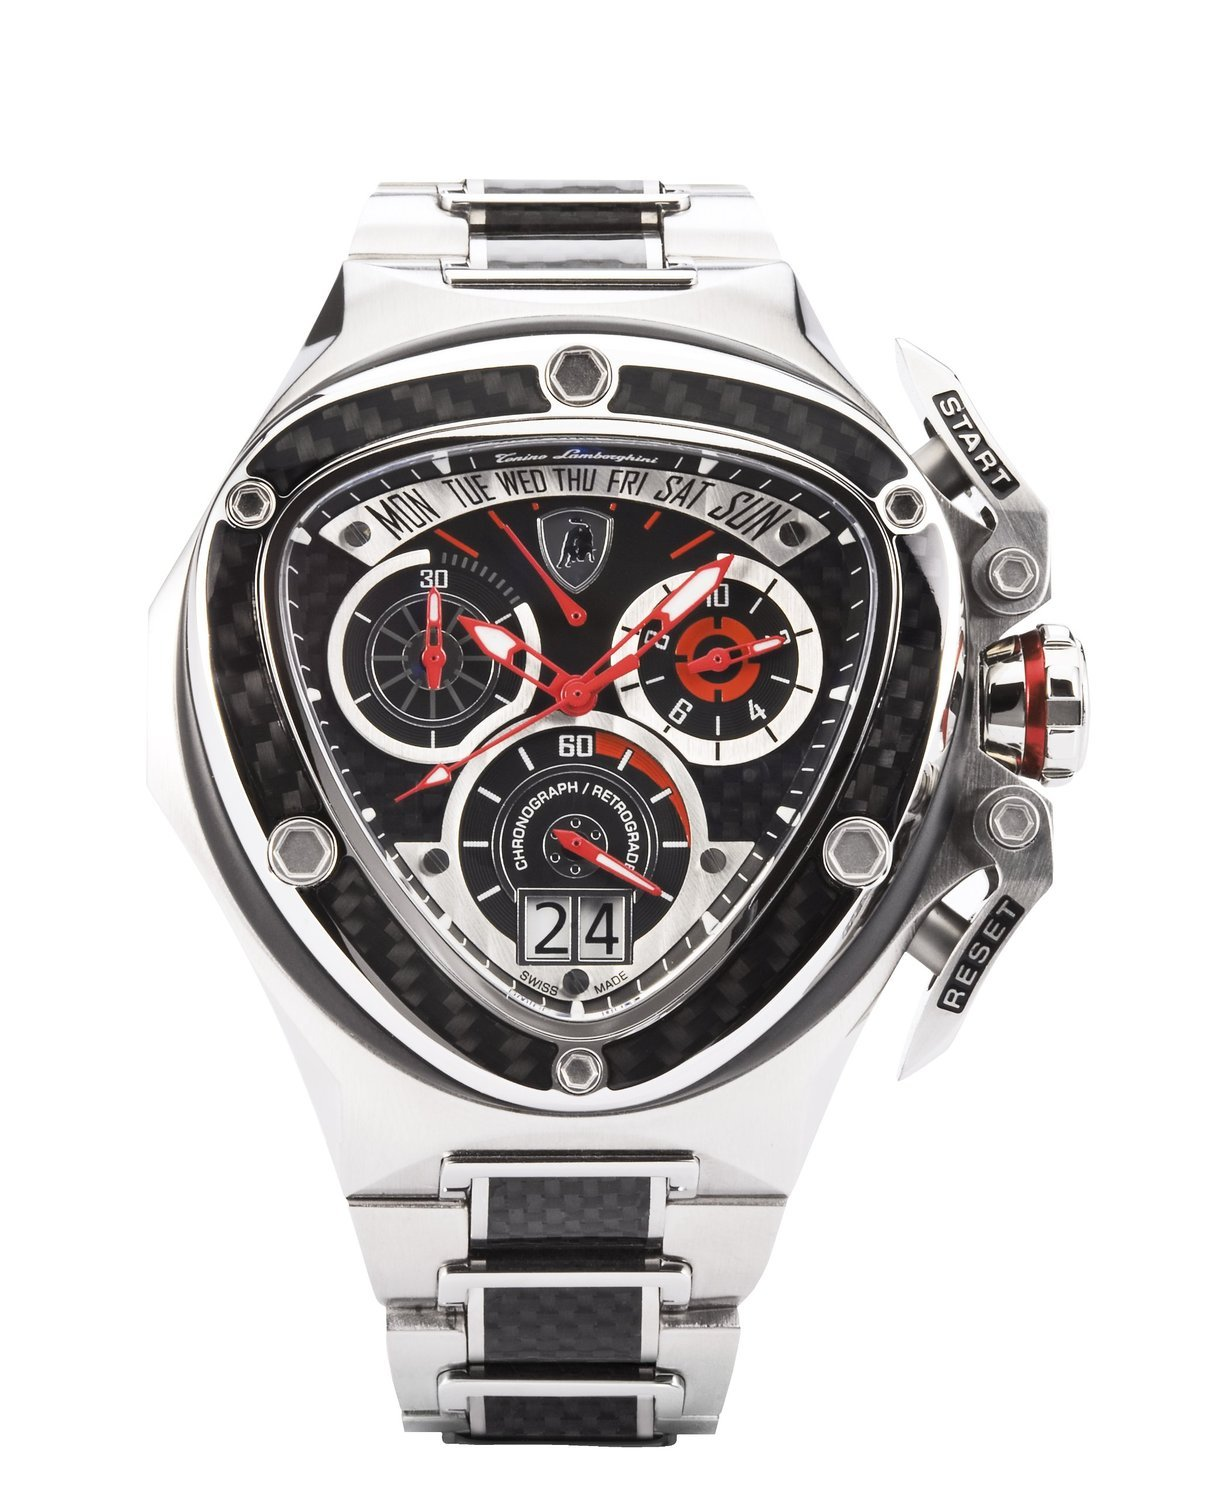 Tonino Lamborghini 3019 Spyder Chronograph Watch